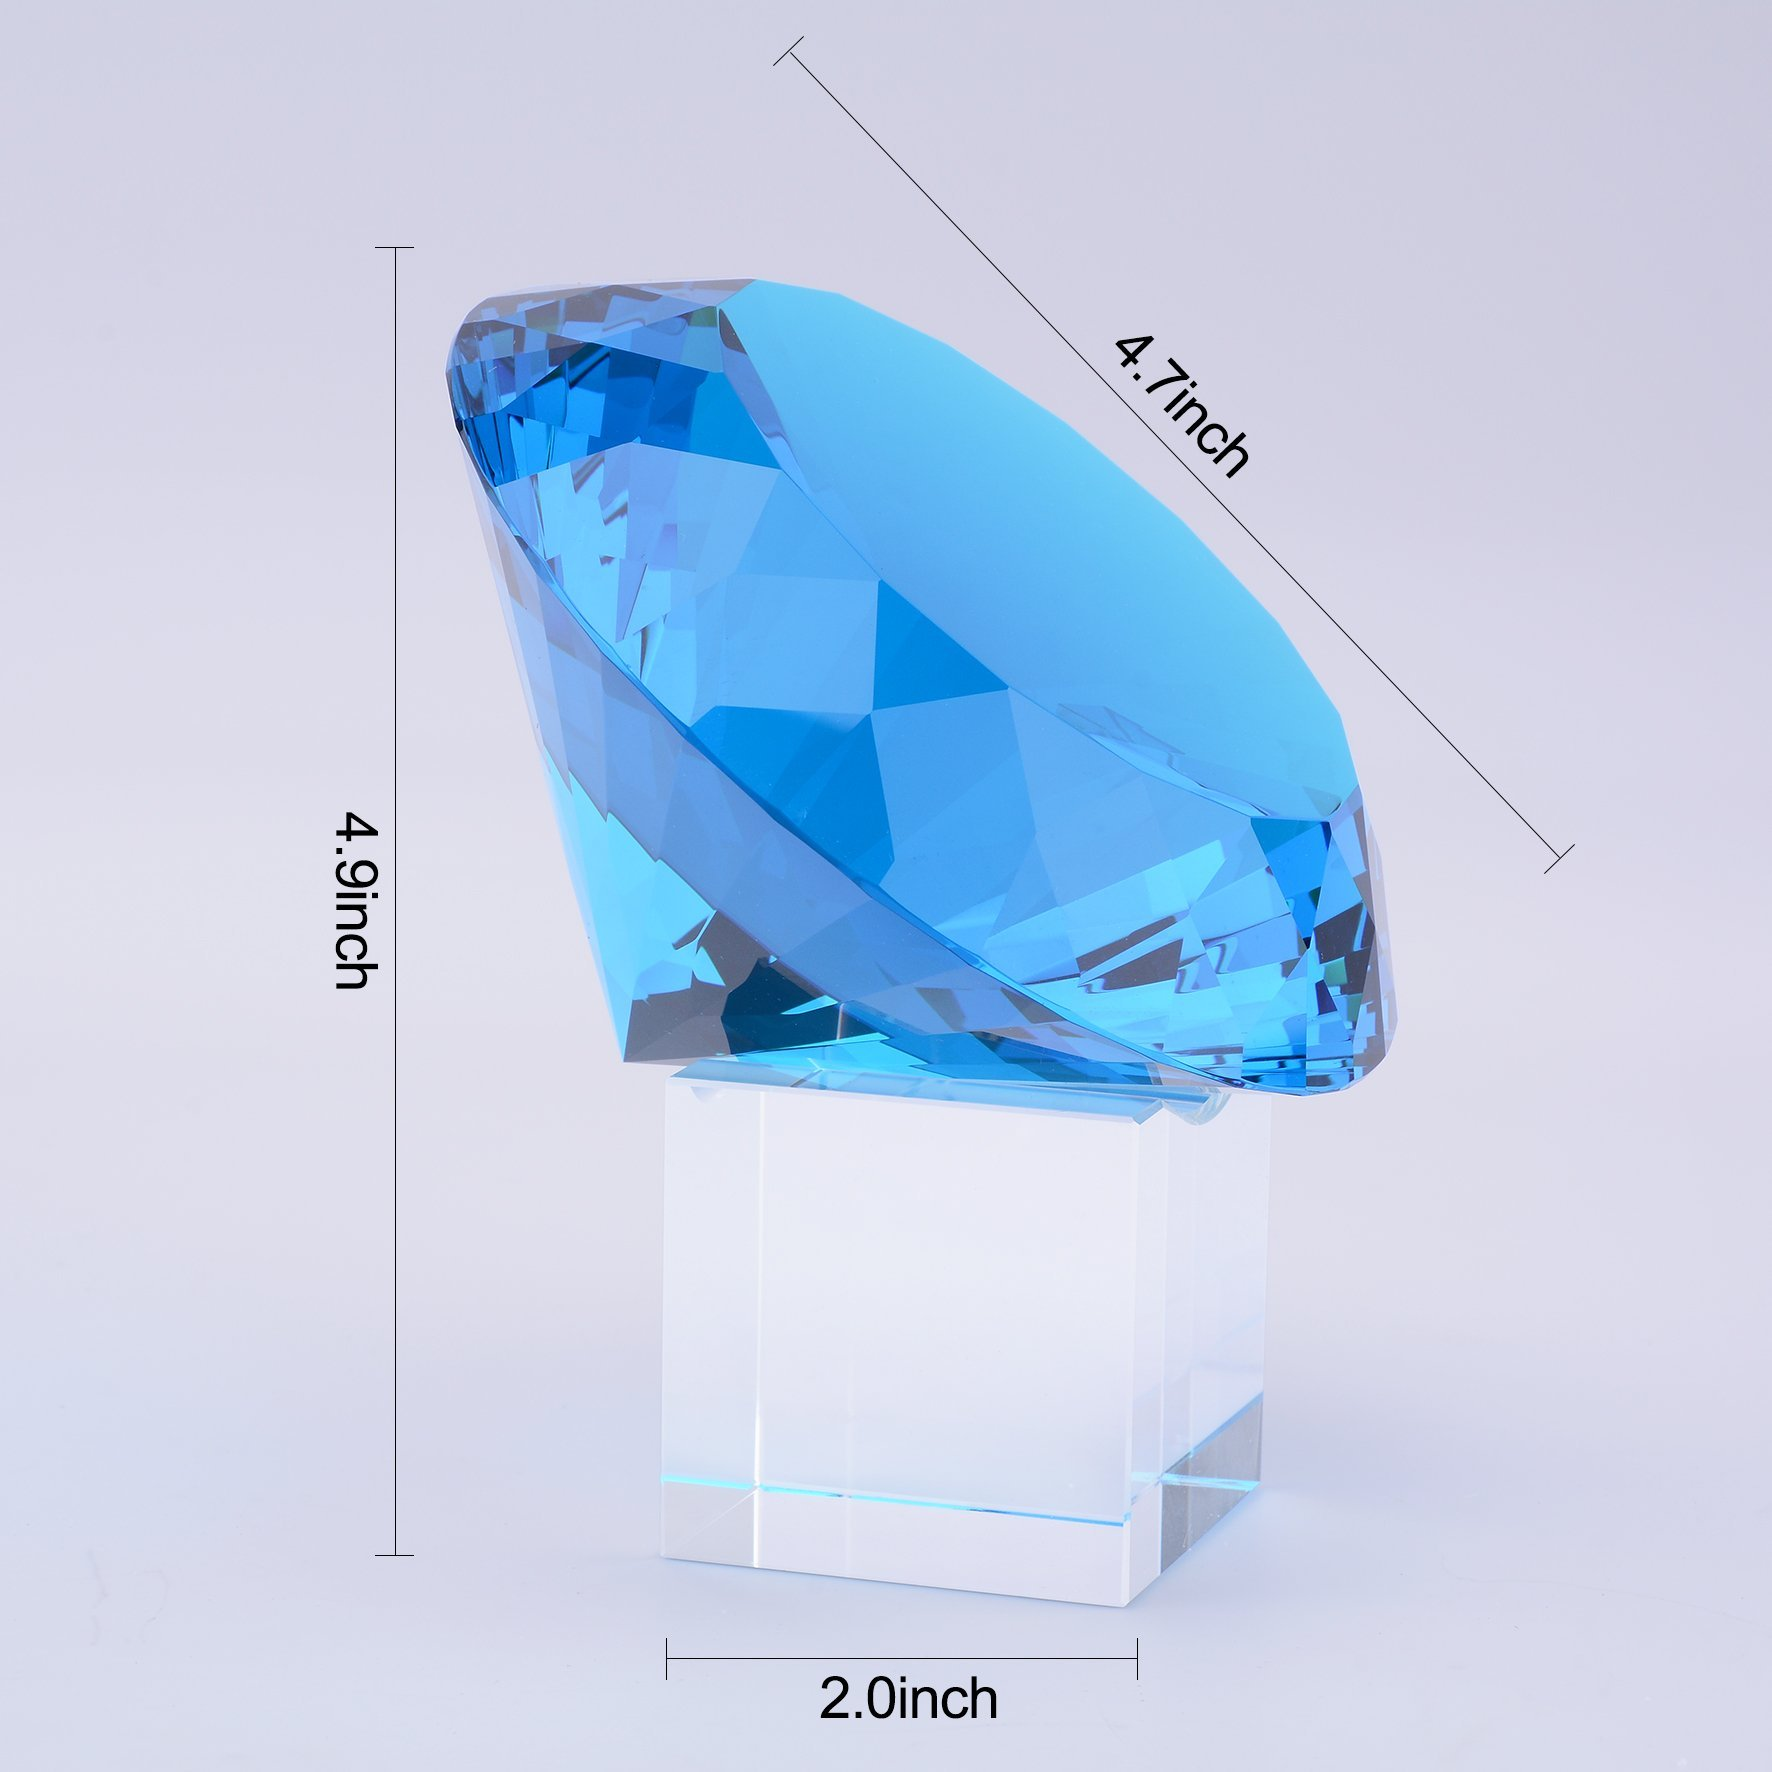 BRLIGHTING Cobalt Blue crystal Diamond Paperweight on stand for Office, Lovely Gift for Friends and Family (D120mm / 4.73'') by BRLIGHTING (Image #4)